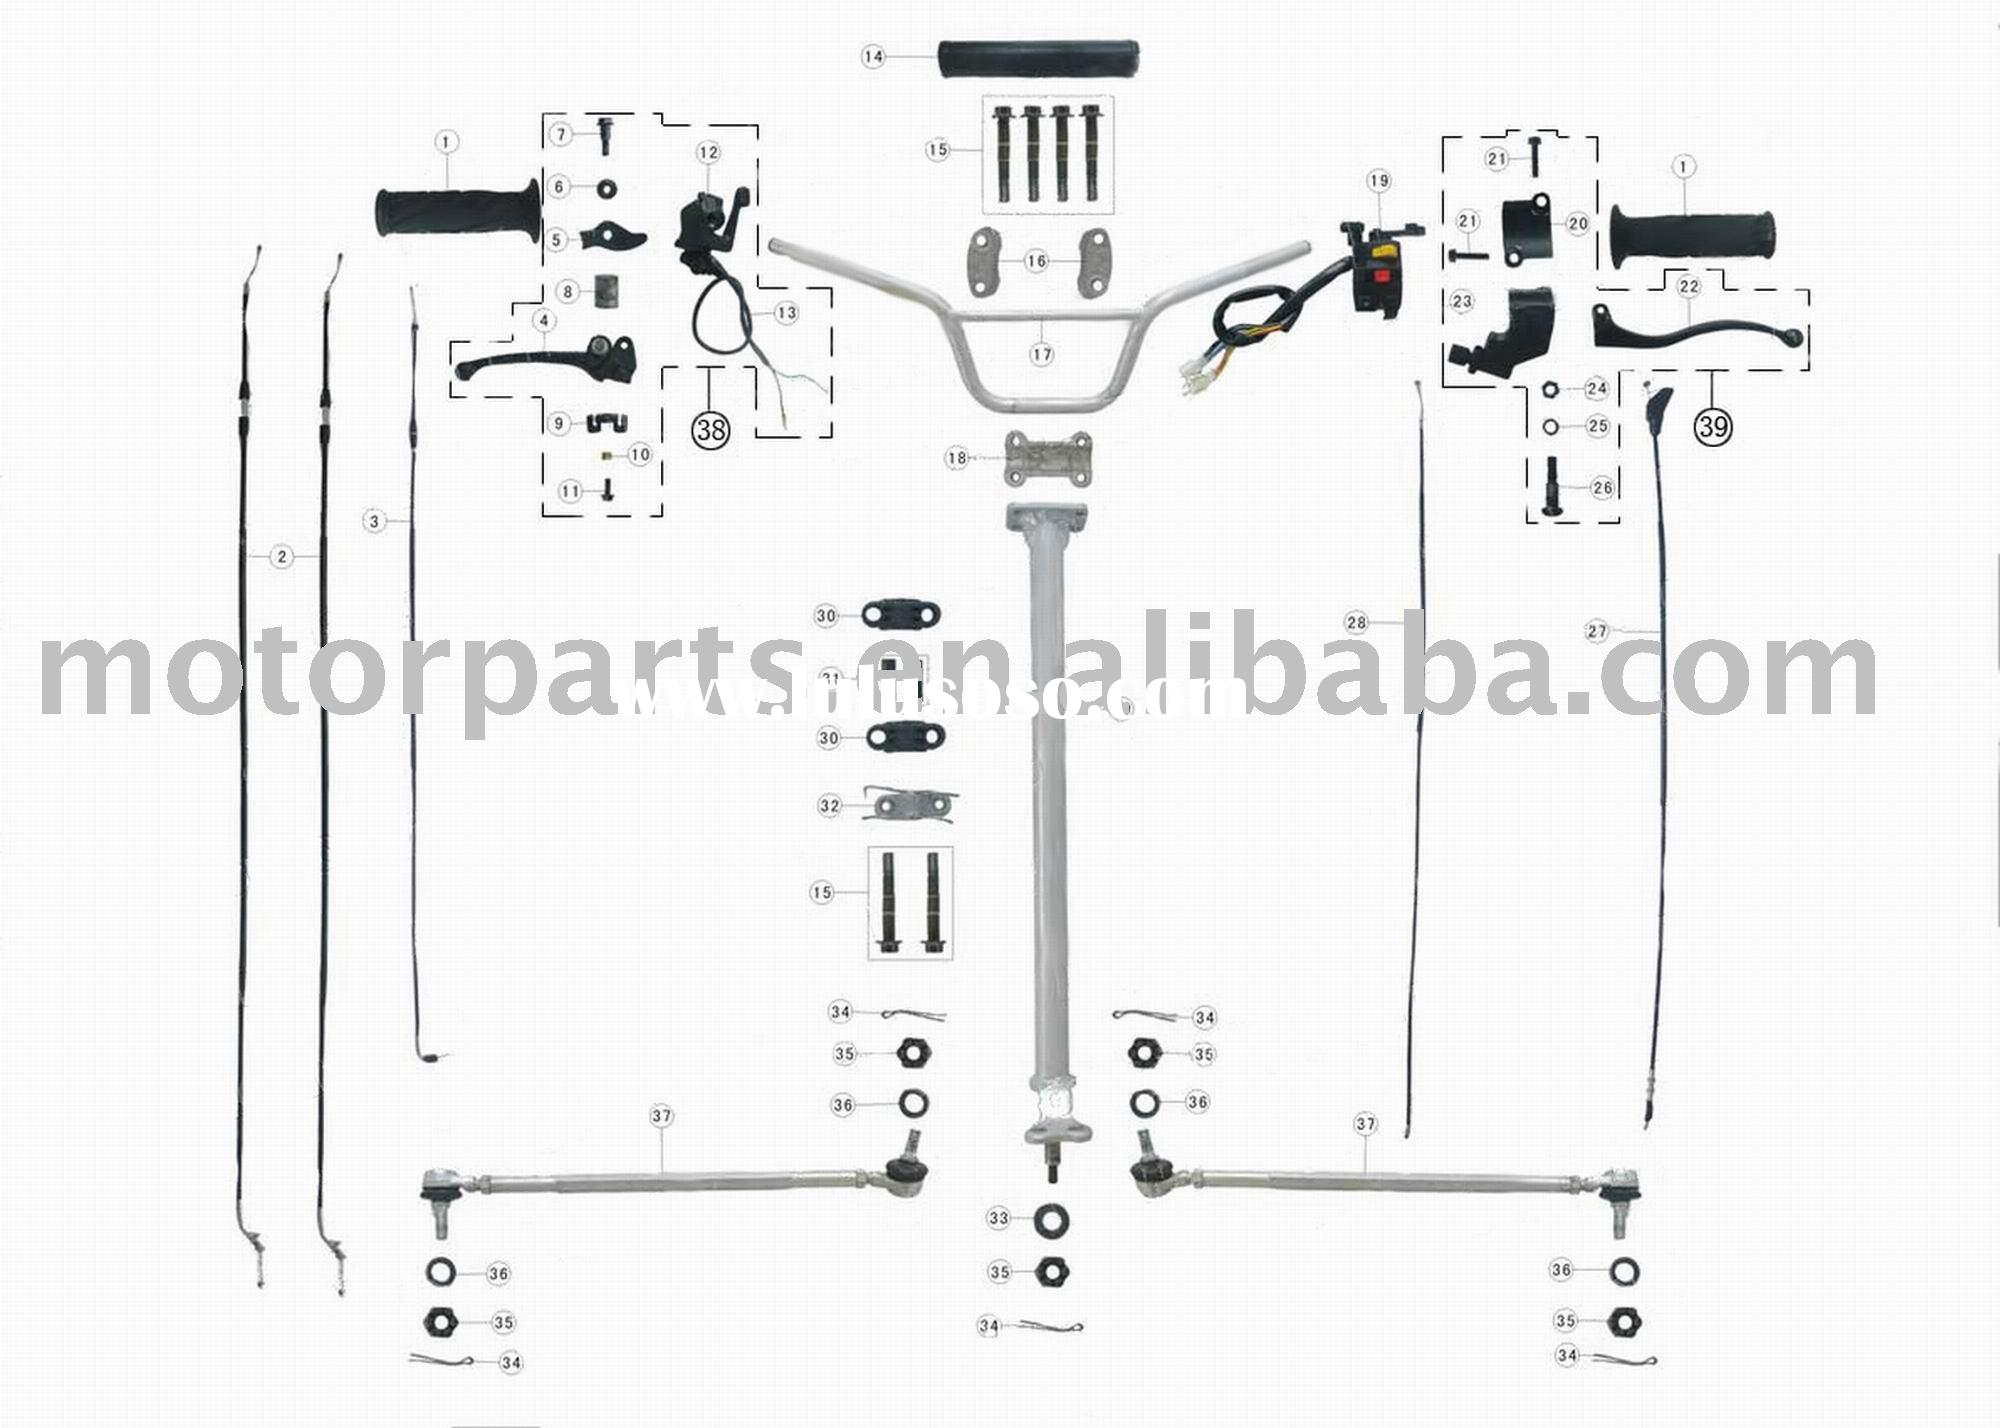 Taotao Atv Wiring Diagram